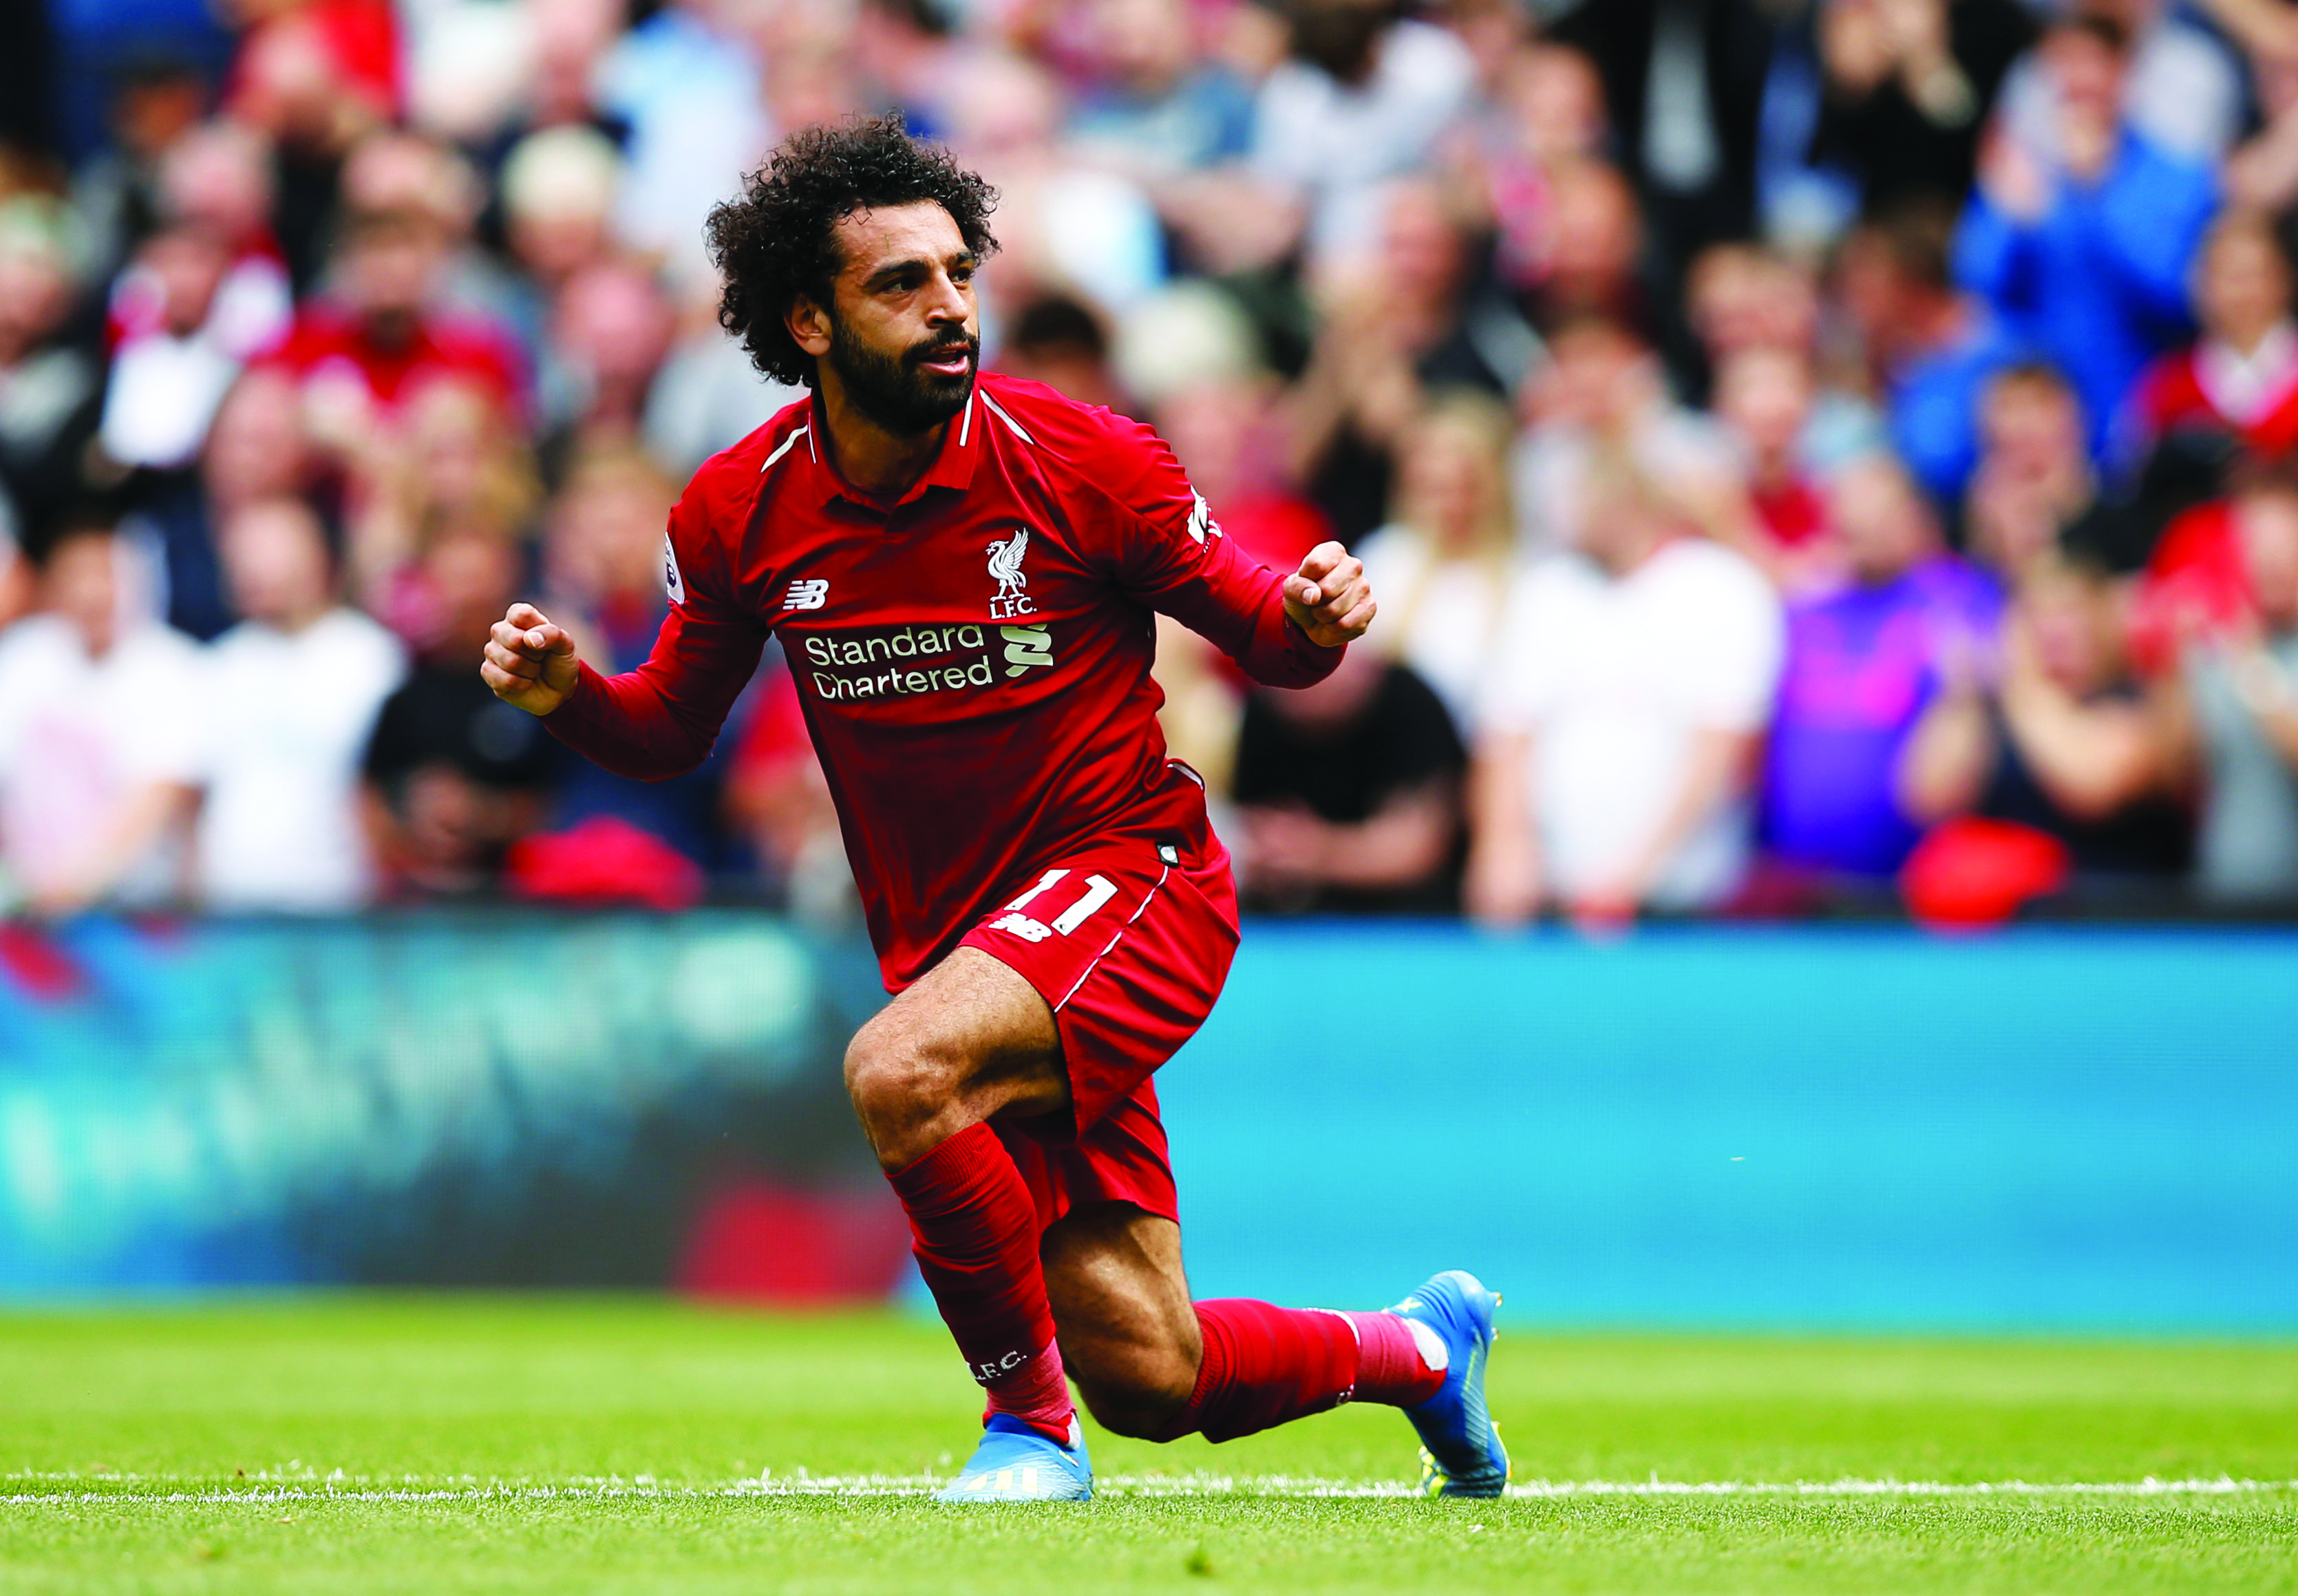 Football: Salah on target as Liverpool start with easy win